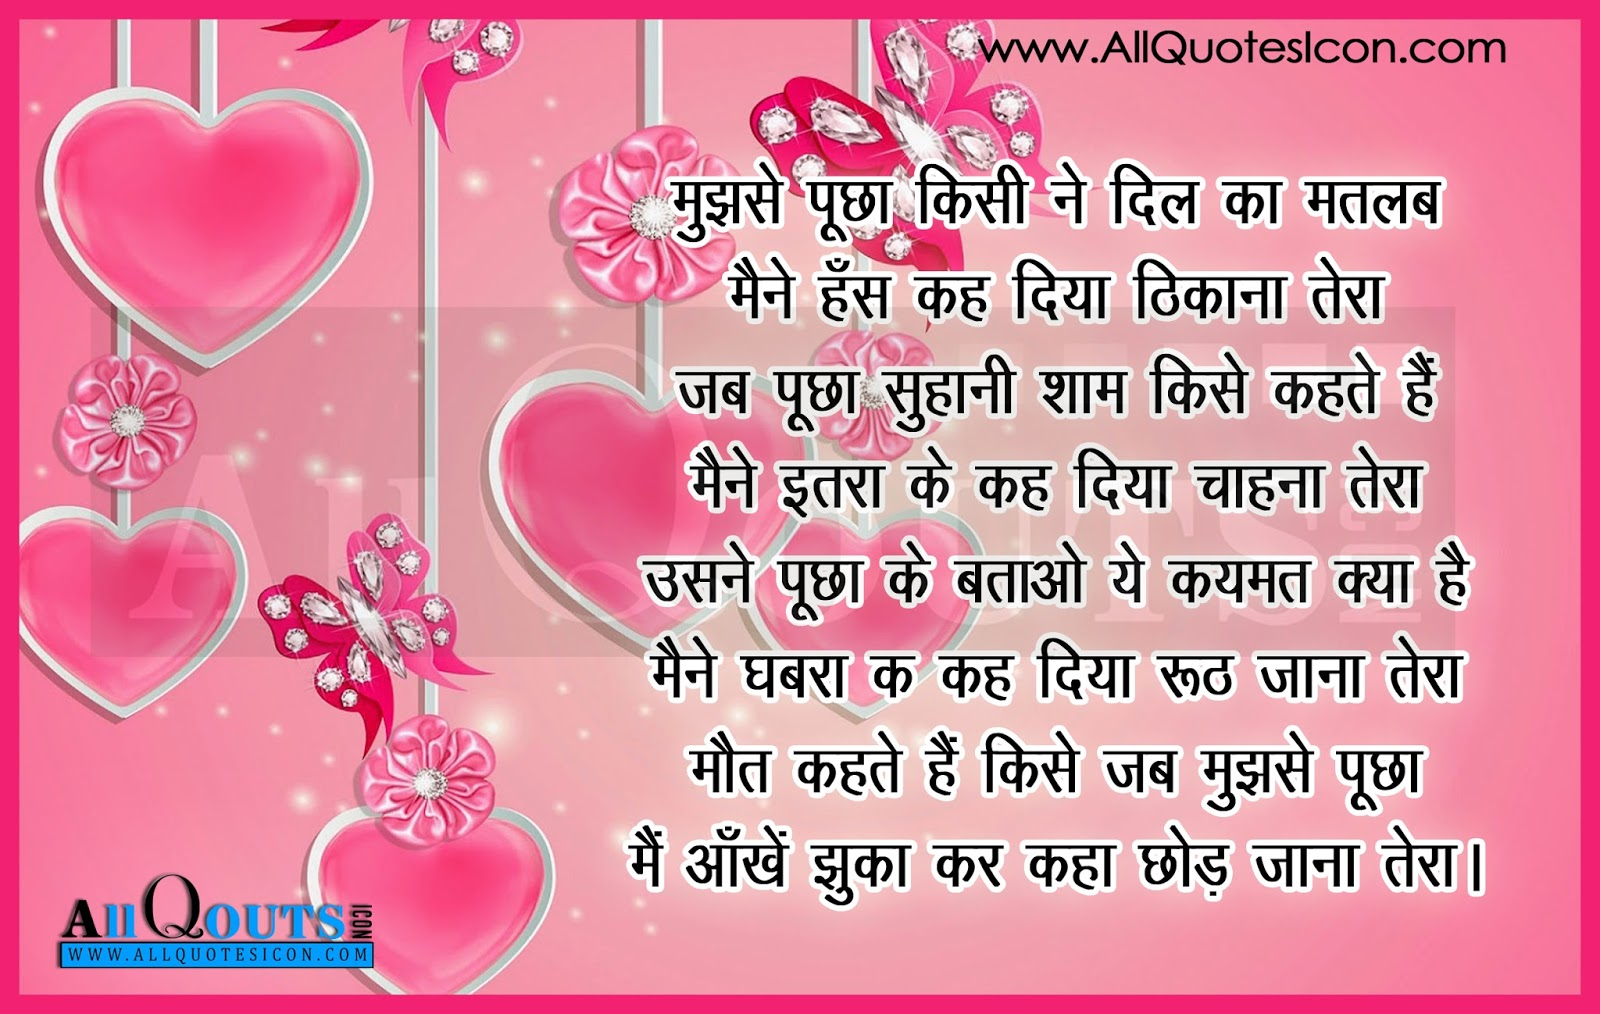 Good Feelings And Quotes In Hindi Wwwallquotesiconcom Telugu